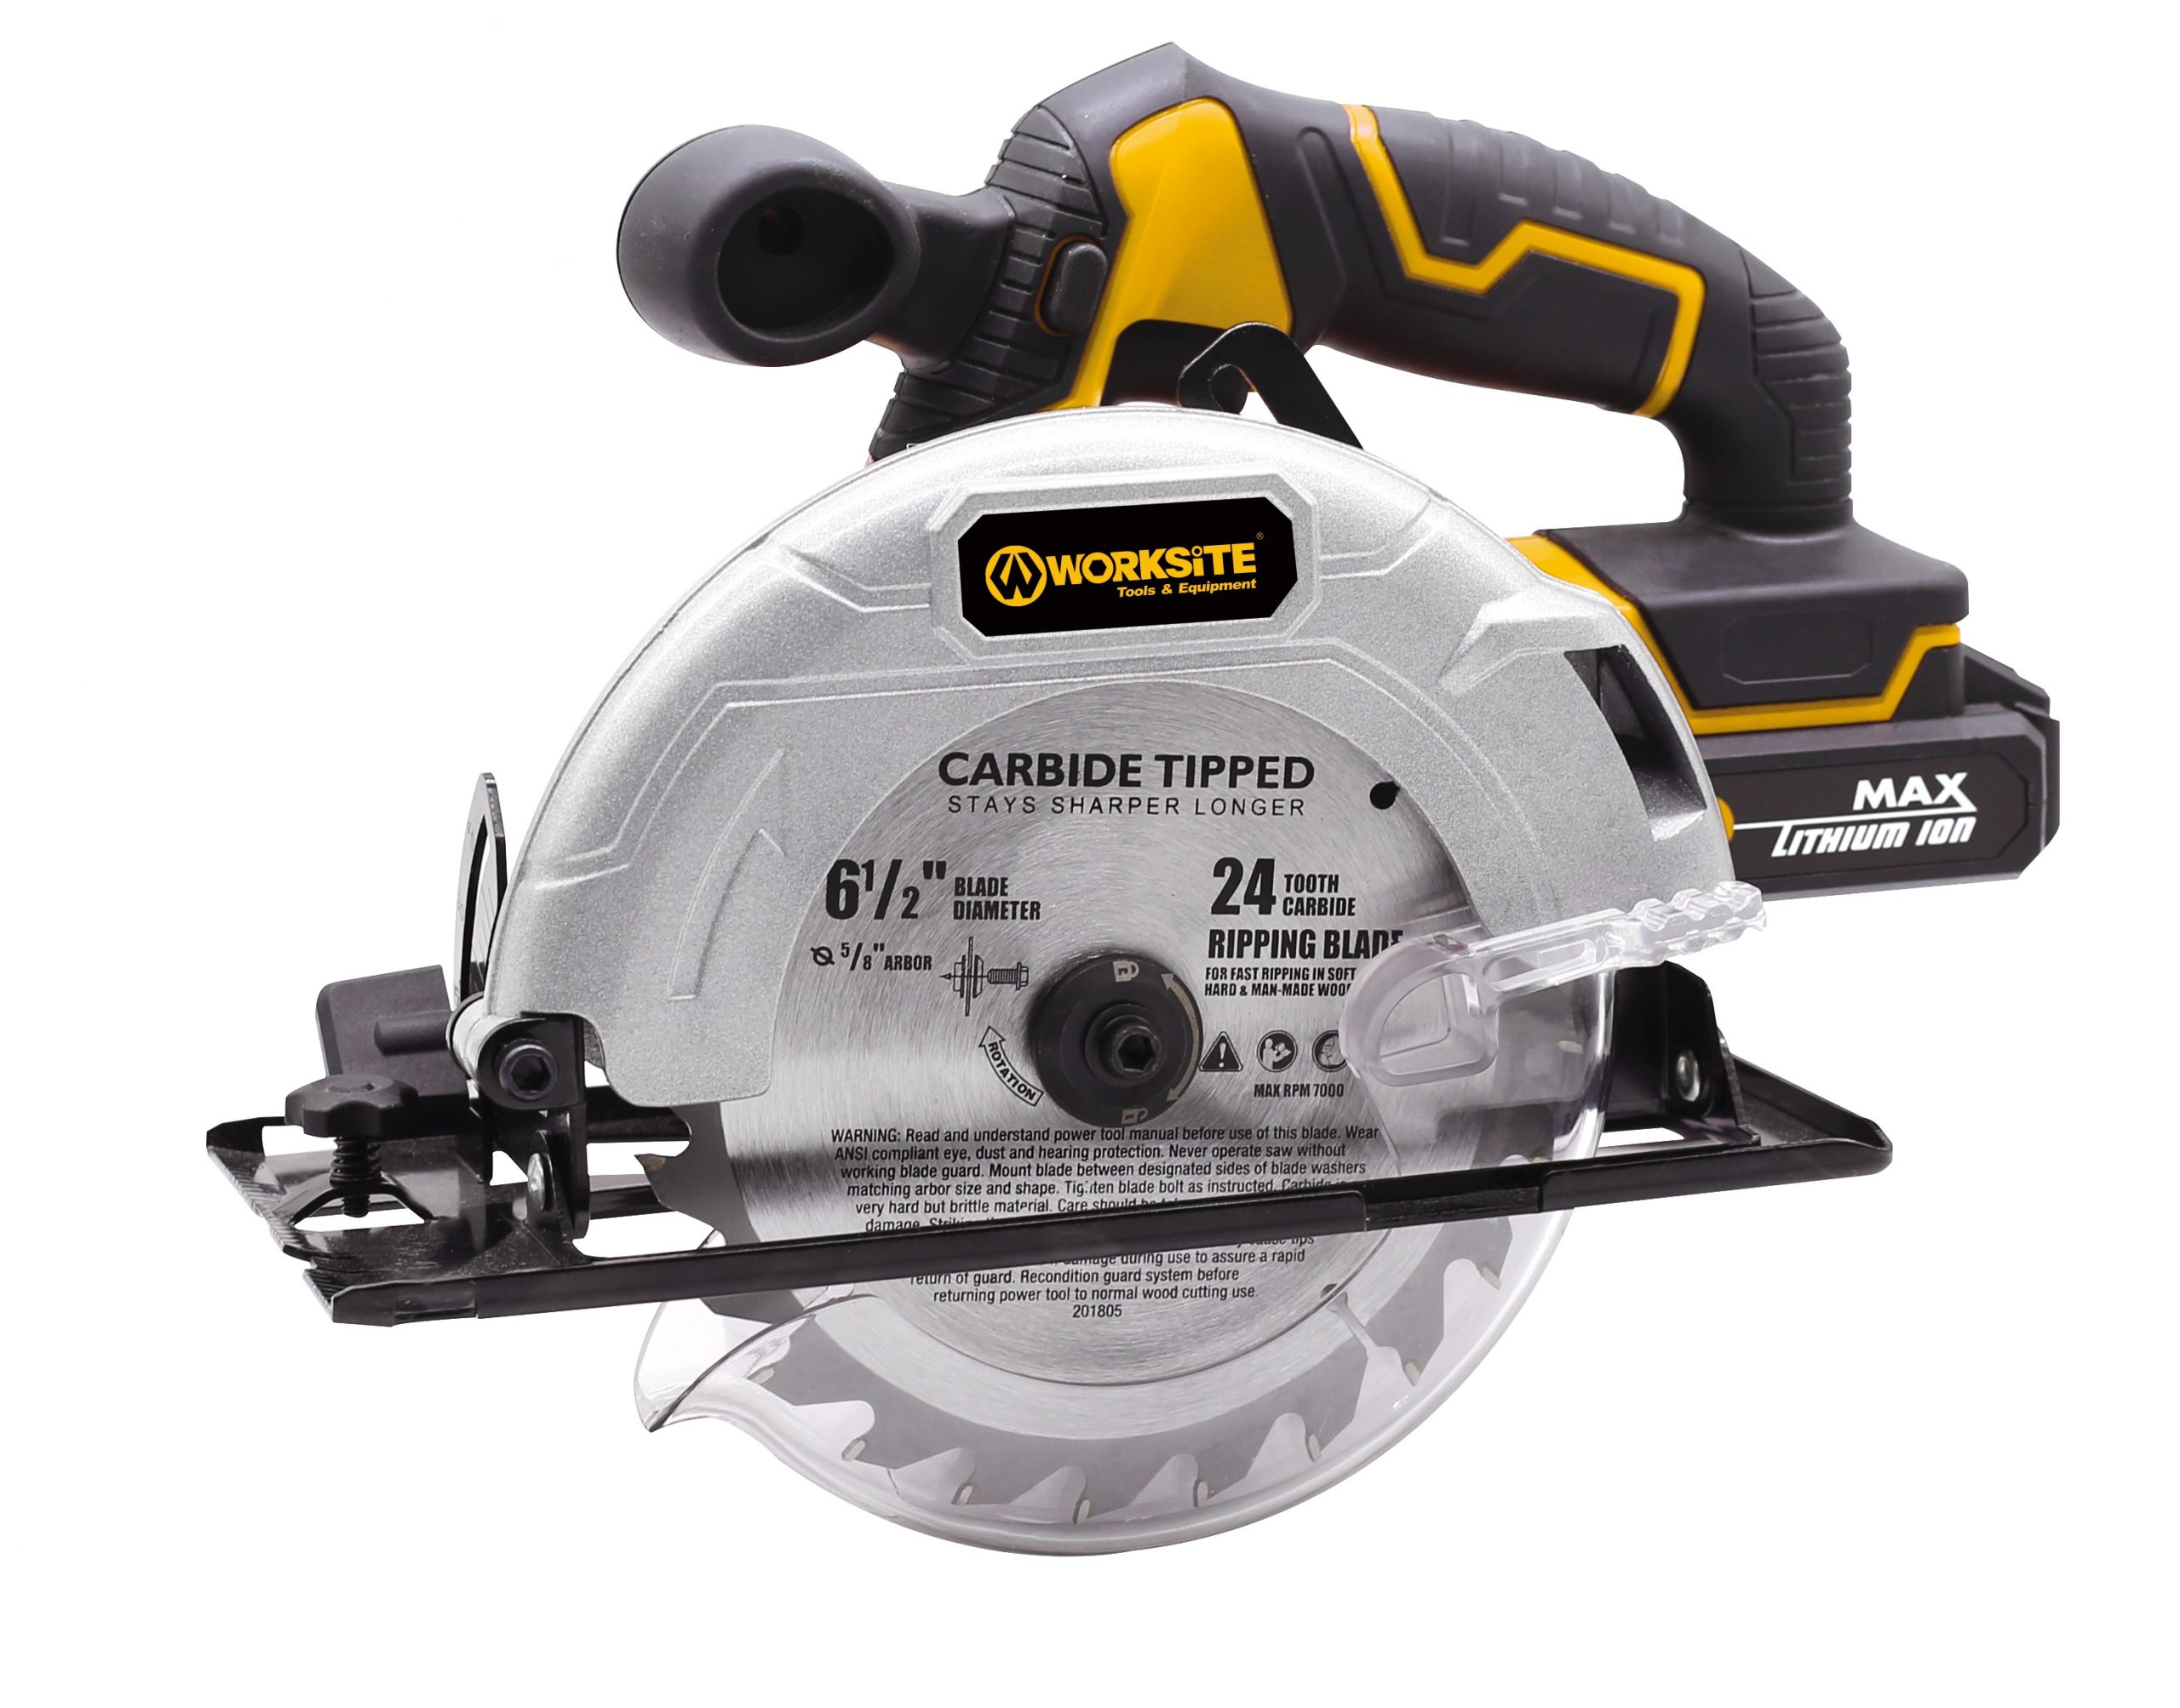 """Worksite Cordless Circular Saw 20V, 2.0AH Battery and FAST Charger. High-Performance Motor delivers 4000 RPM's for aggressive cutting. 6-1/2″"" Carbide Tooth Blade delivers a 2-1/8′ cutting capacity.  Its lightweight design reduces jobsite fatigue, Comfortable rubberized Handle grip. CCS326″"